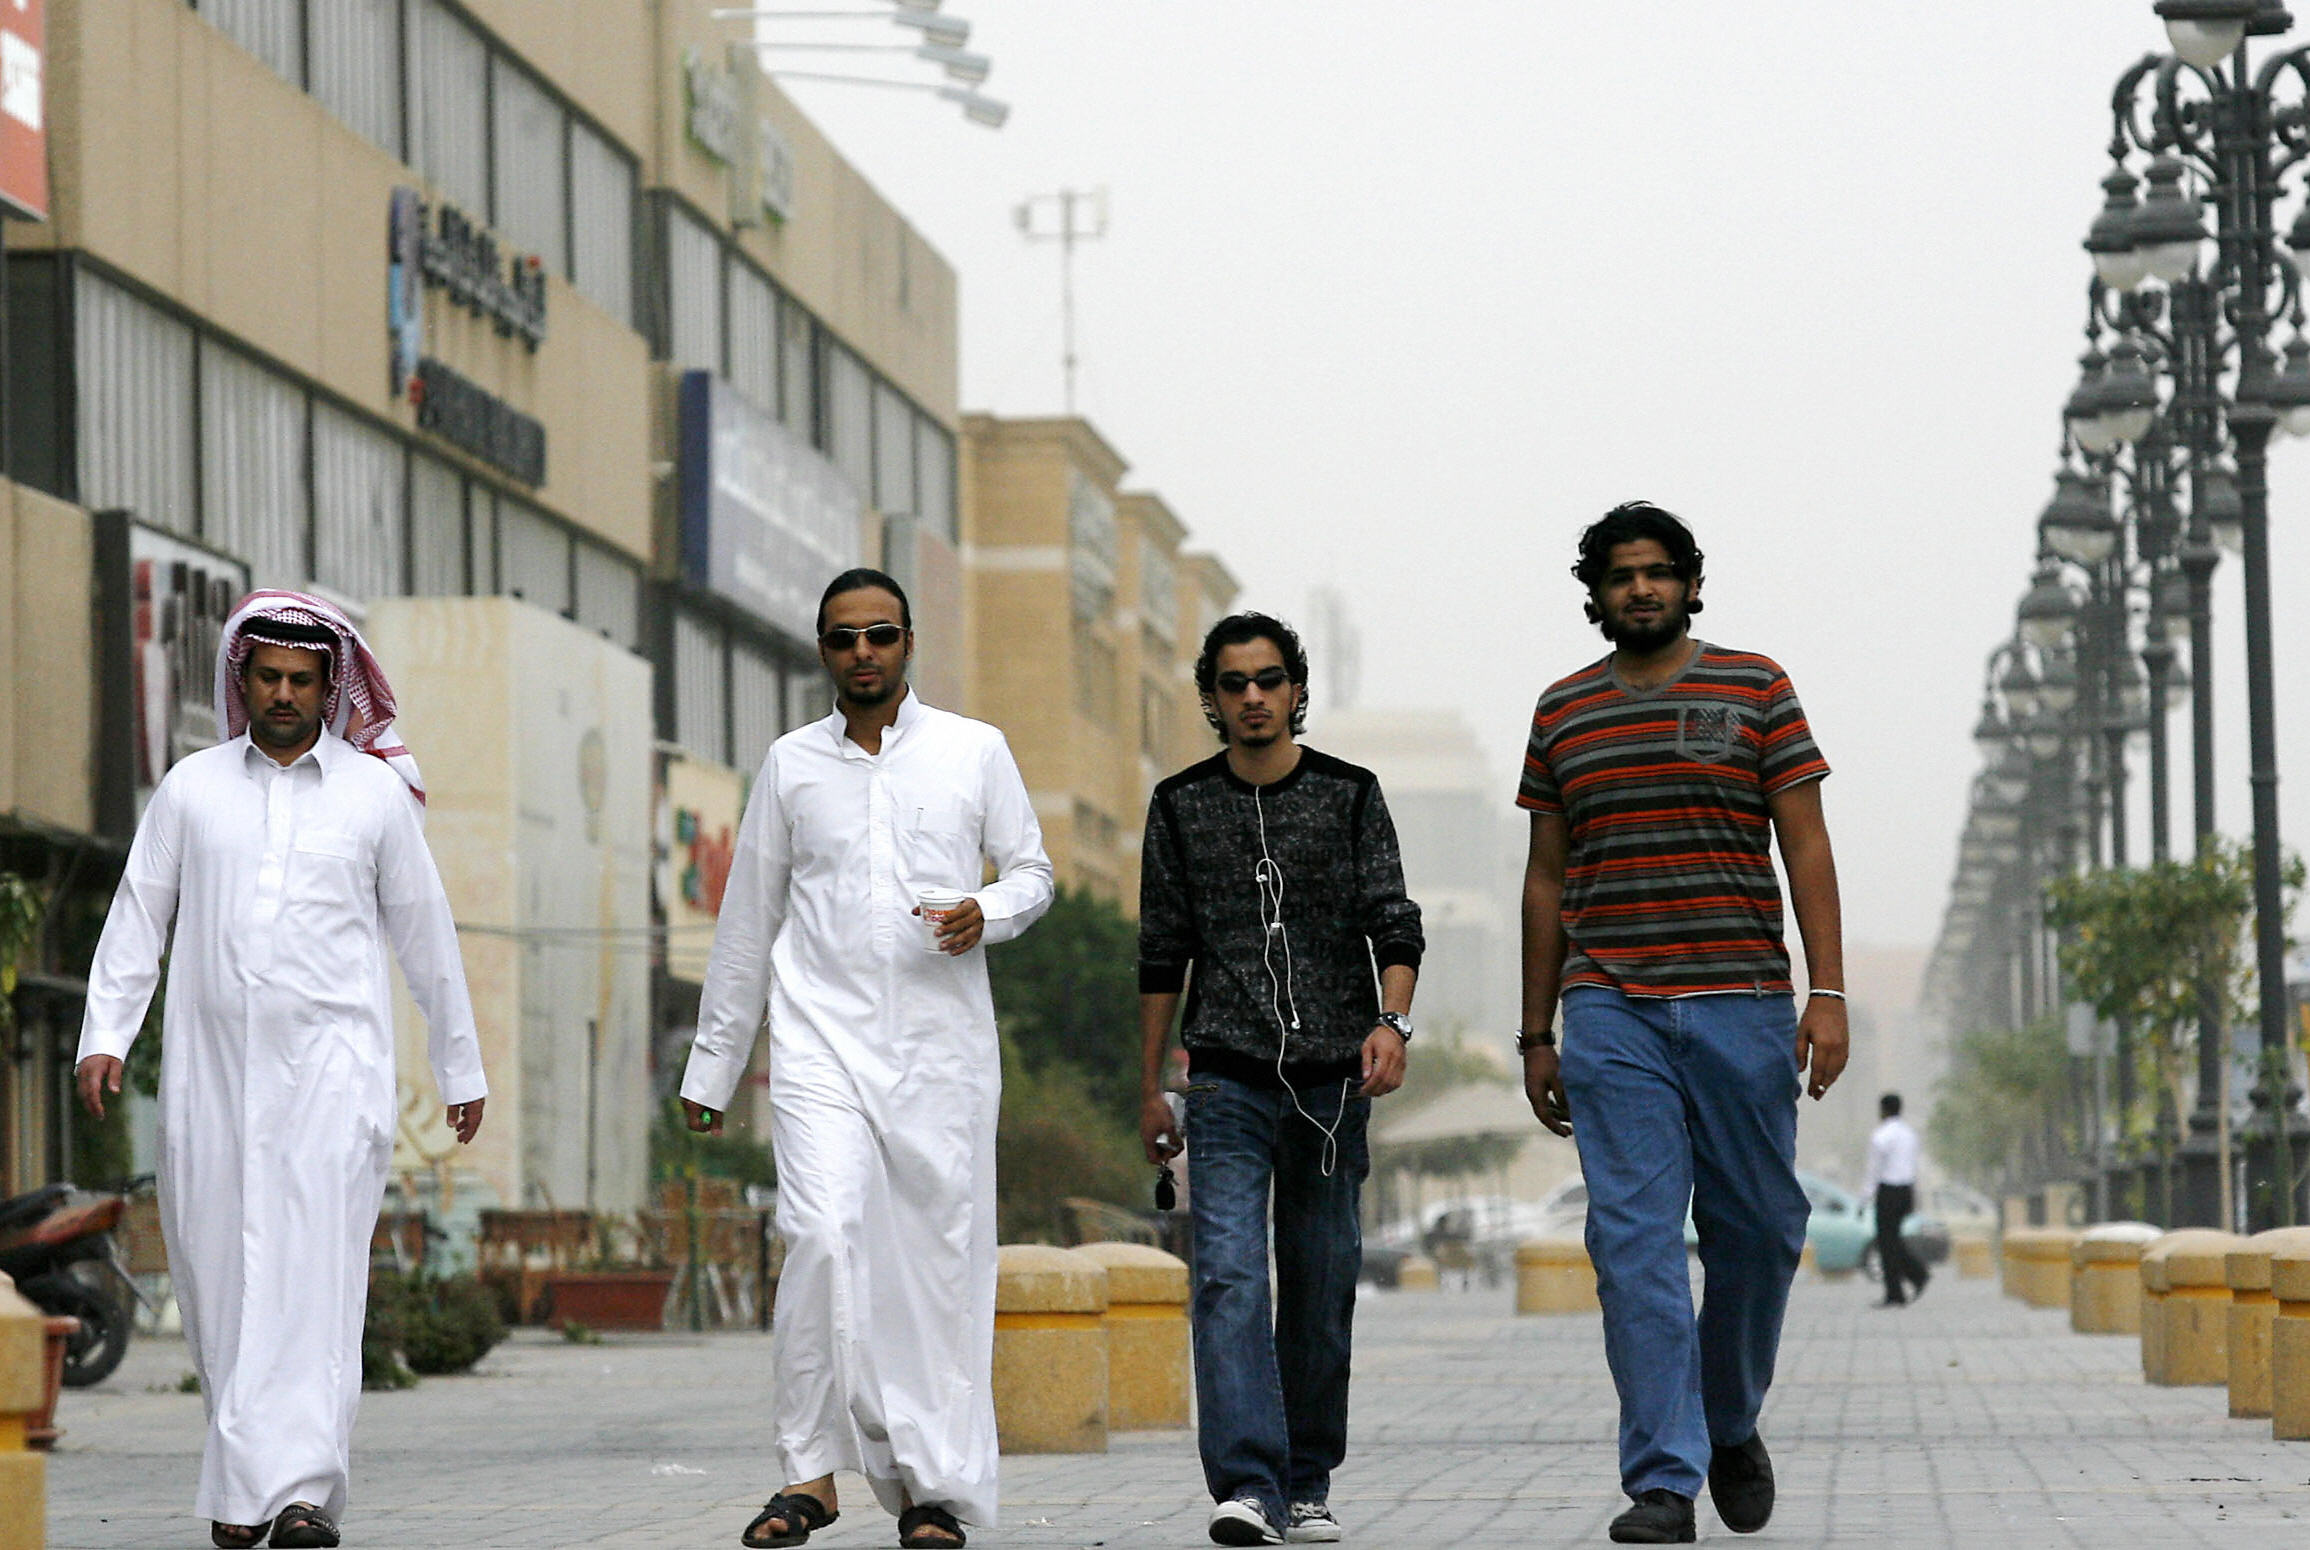 Saudi youths walk together in a business